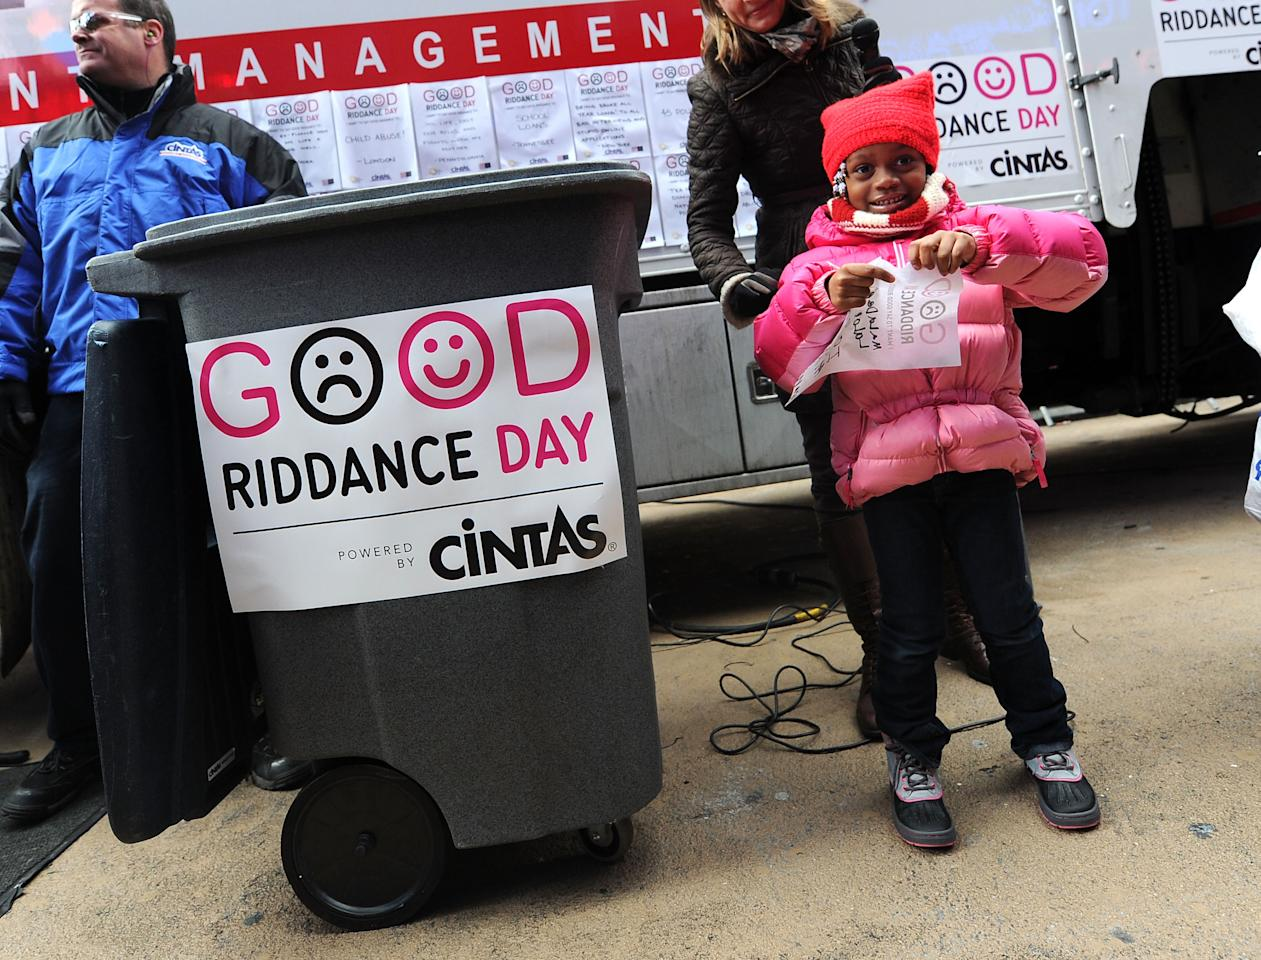 NEW YORK, NY - DECEMBER 28:  Maladee Lalor rips up her old residential address so she can move to a nicer home at the 2011 Good Riddance Day at Times Square on December 28, 2011 in New York City.  (Photo by Jason Kempin/Getty Images)